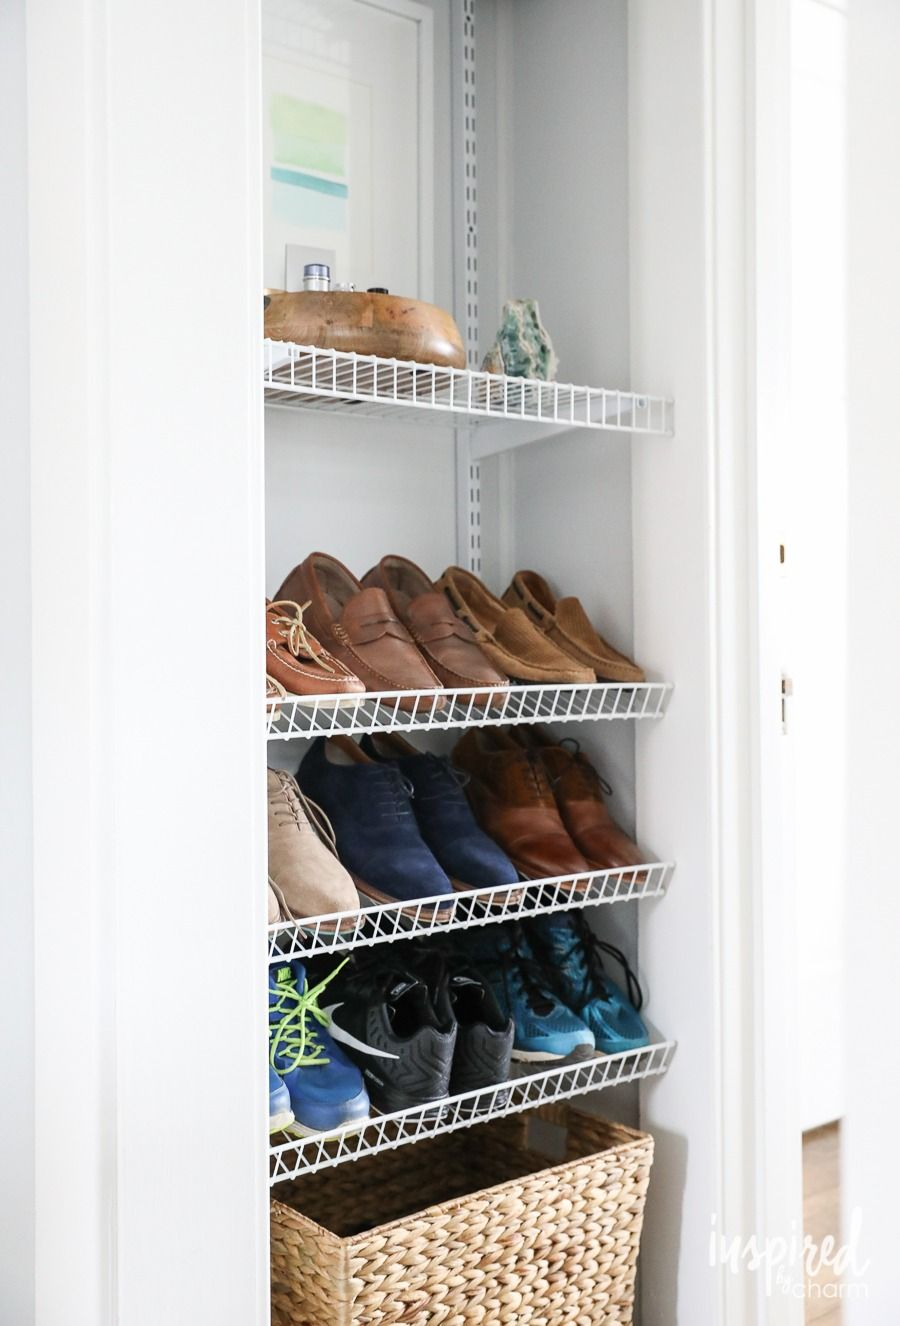 Diy Custom Shoe Storage How To Organize Your Shoes In An Unused Space Clothes Storage Organizer Diy Shoe Storage Diy Clothes Storage